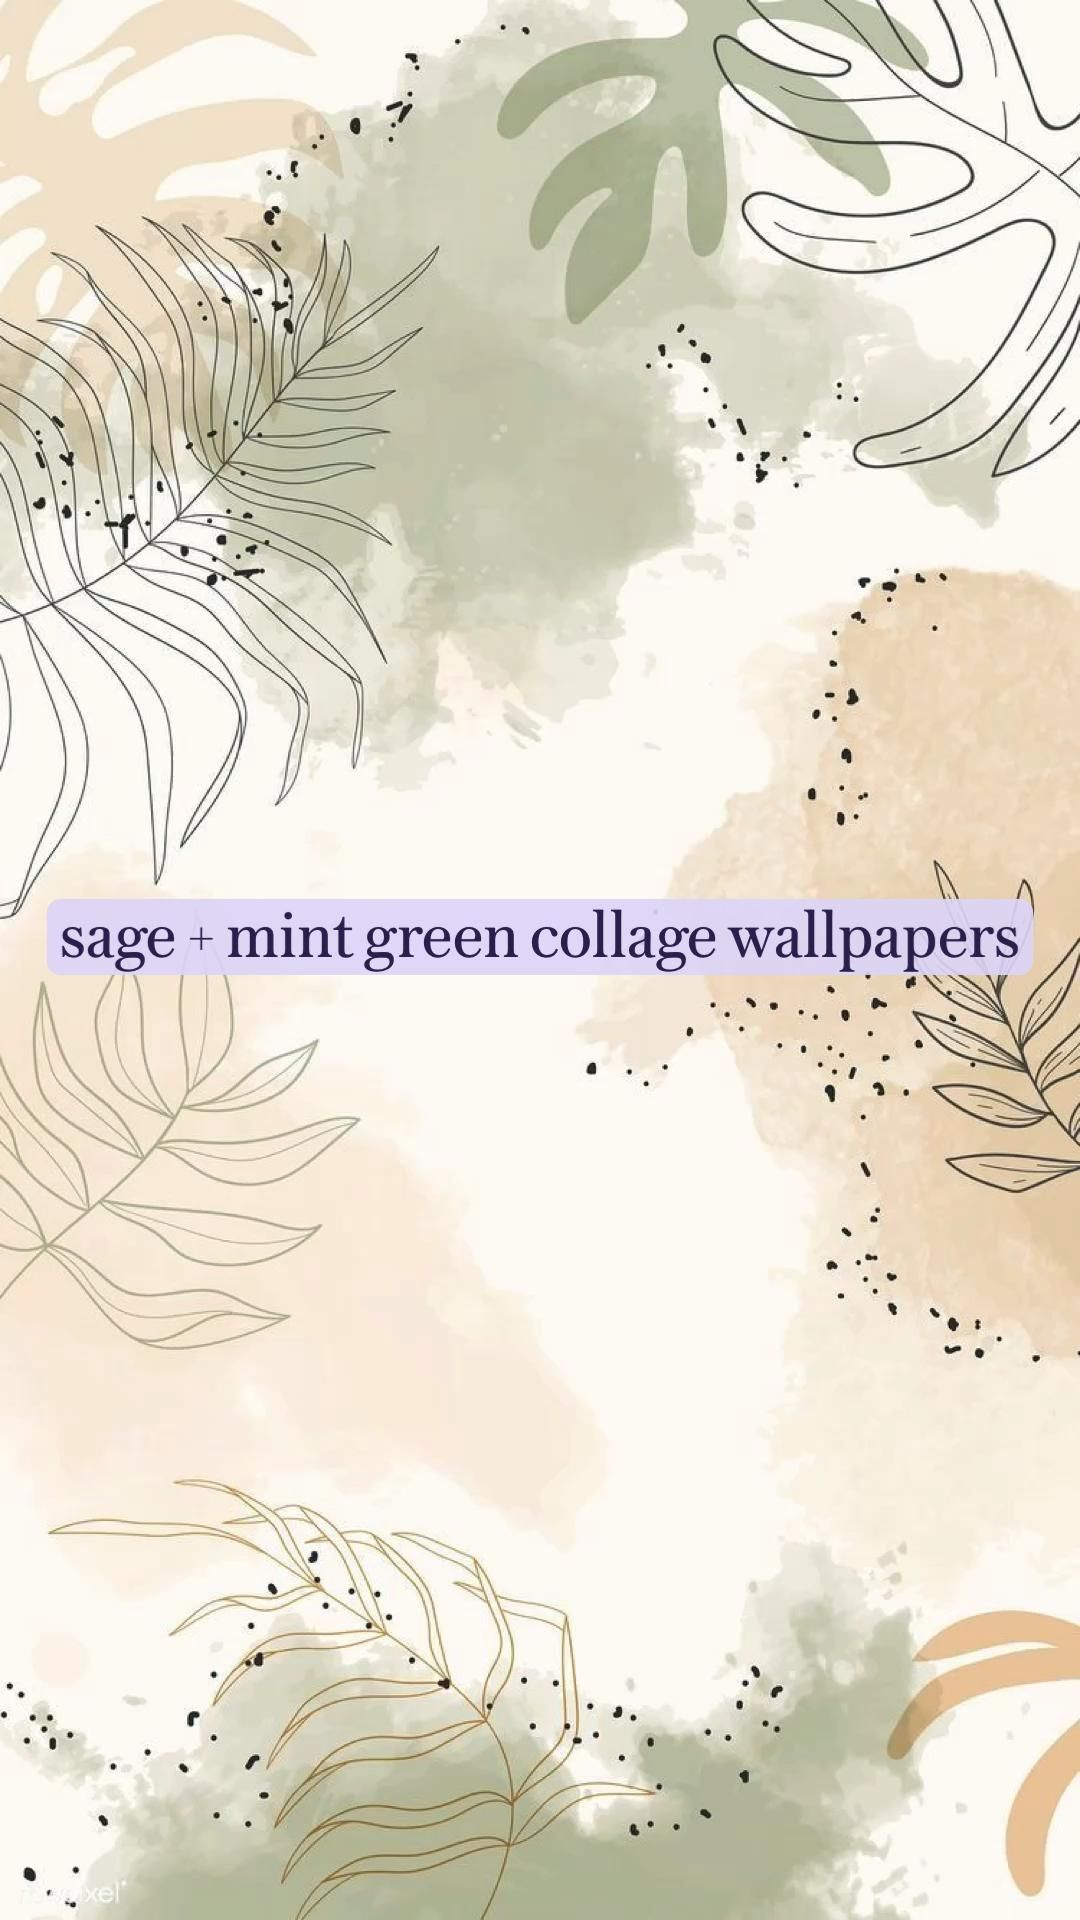 sage + mint green wall collage wallpapers #sage #mint #wallcollage #bedroomdecor #aestheticwallpaper